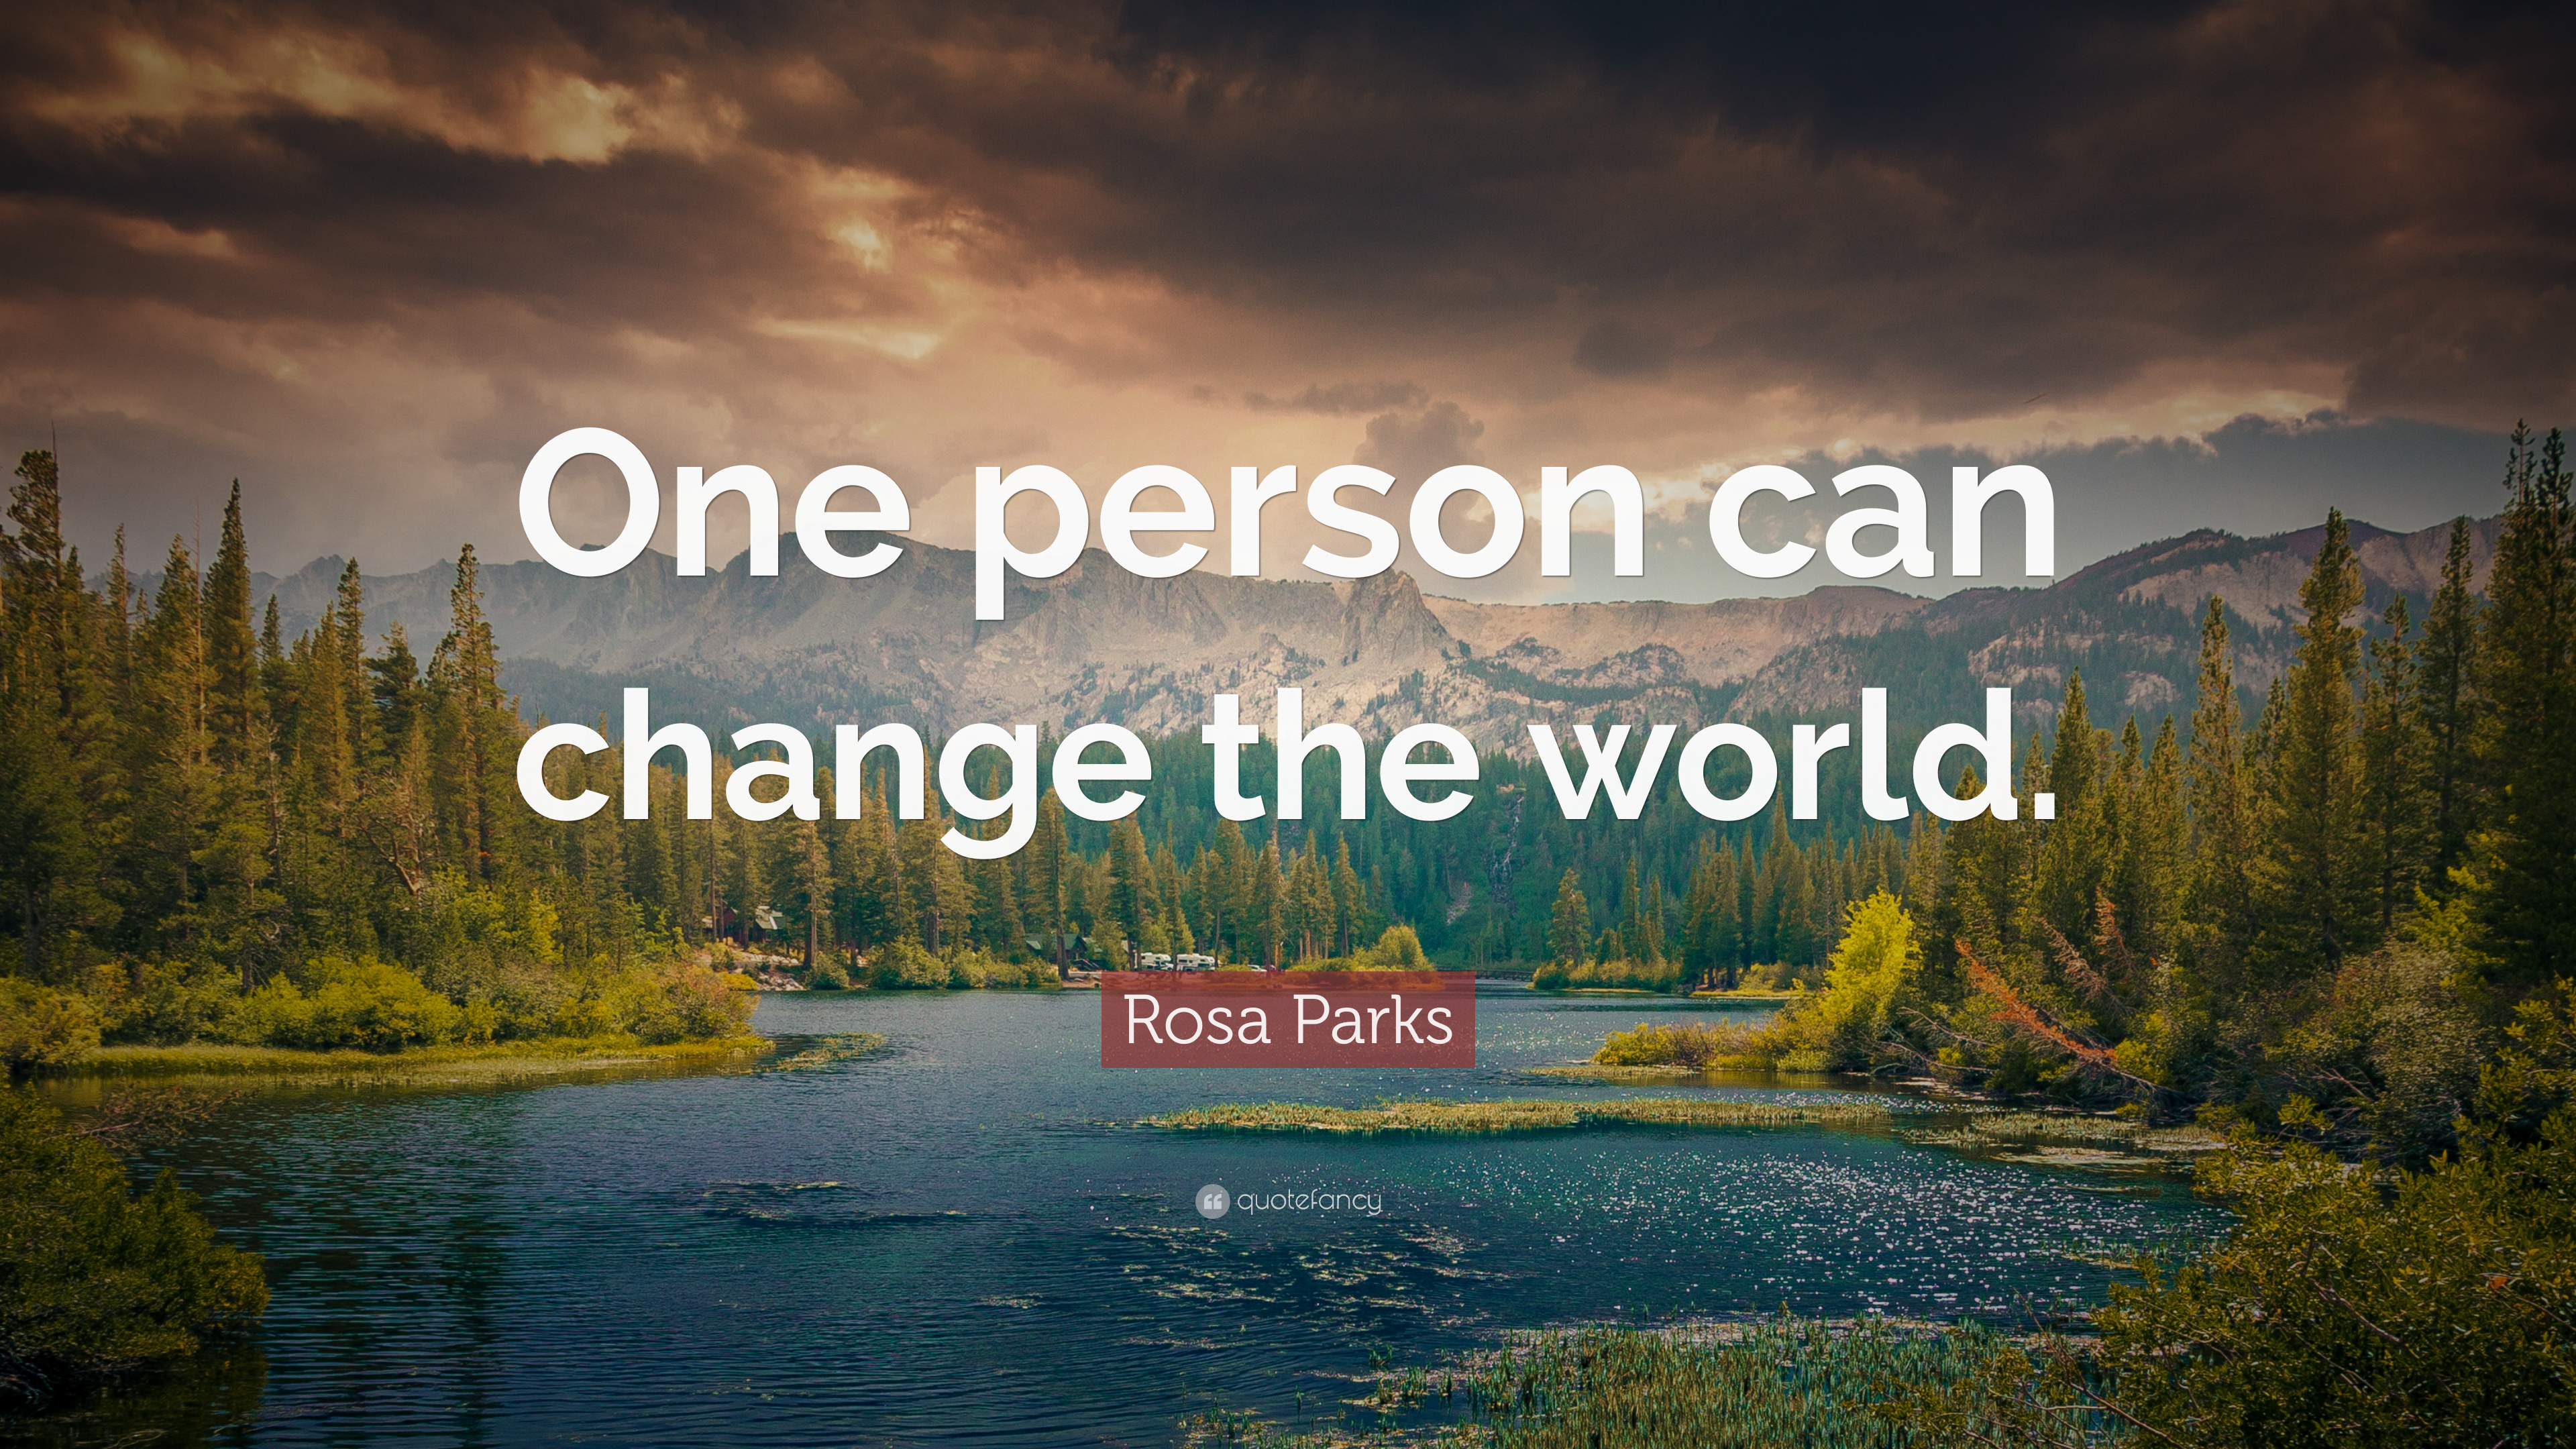 Motivational Sports Quotes Wallpaper Rosa Parks Quote One Person Can Change The World 12